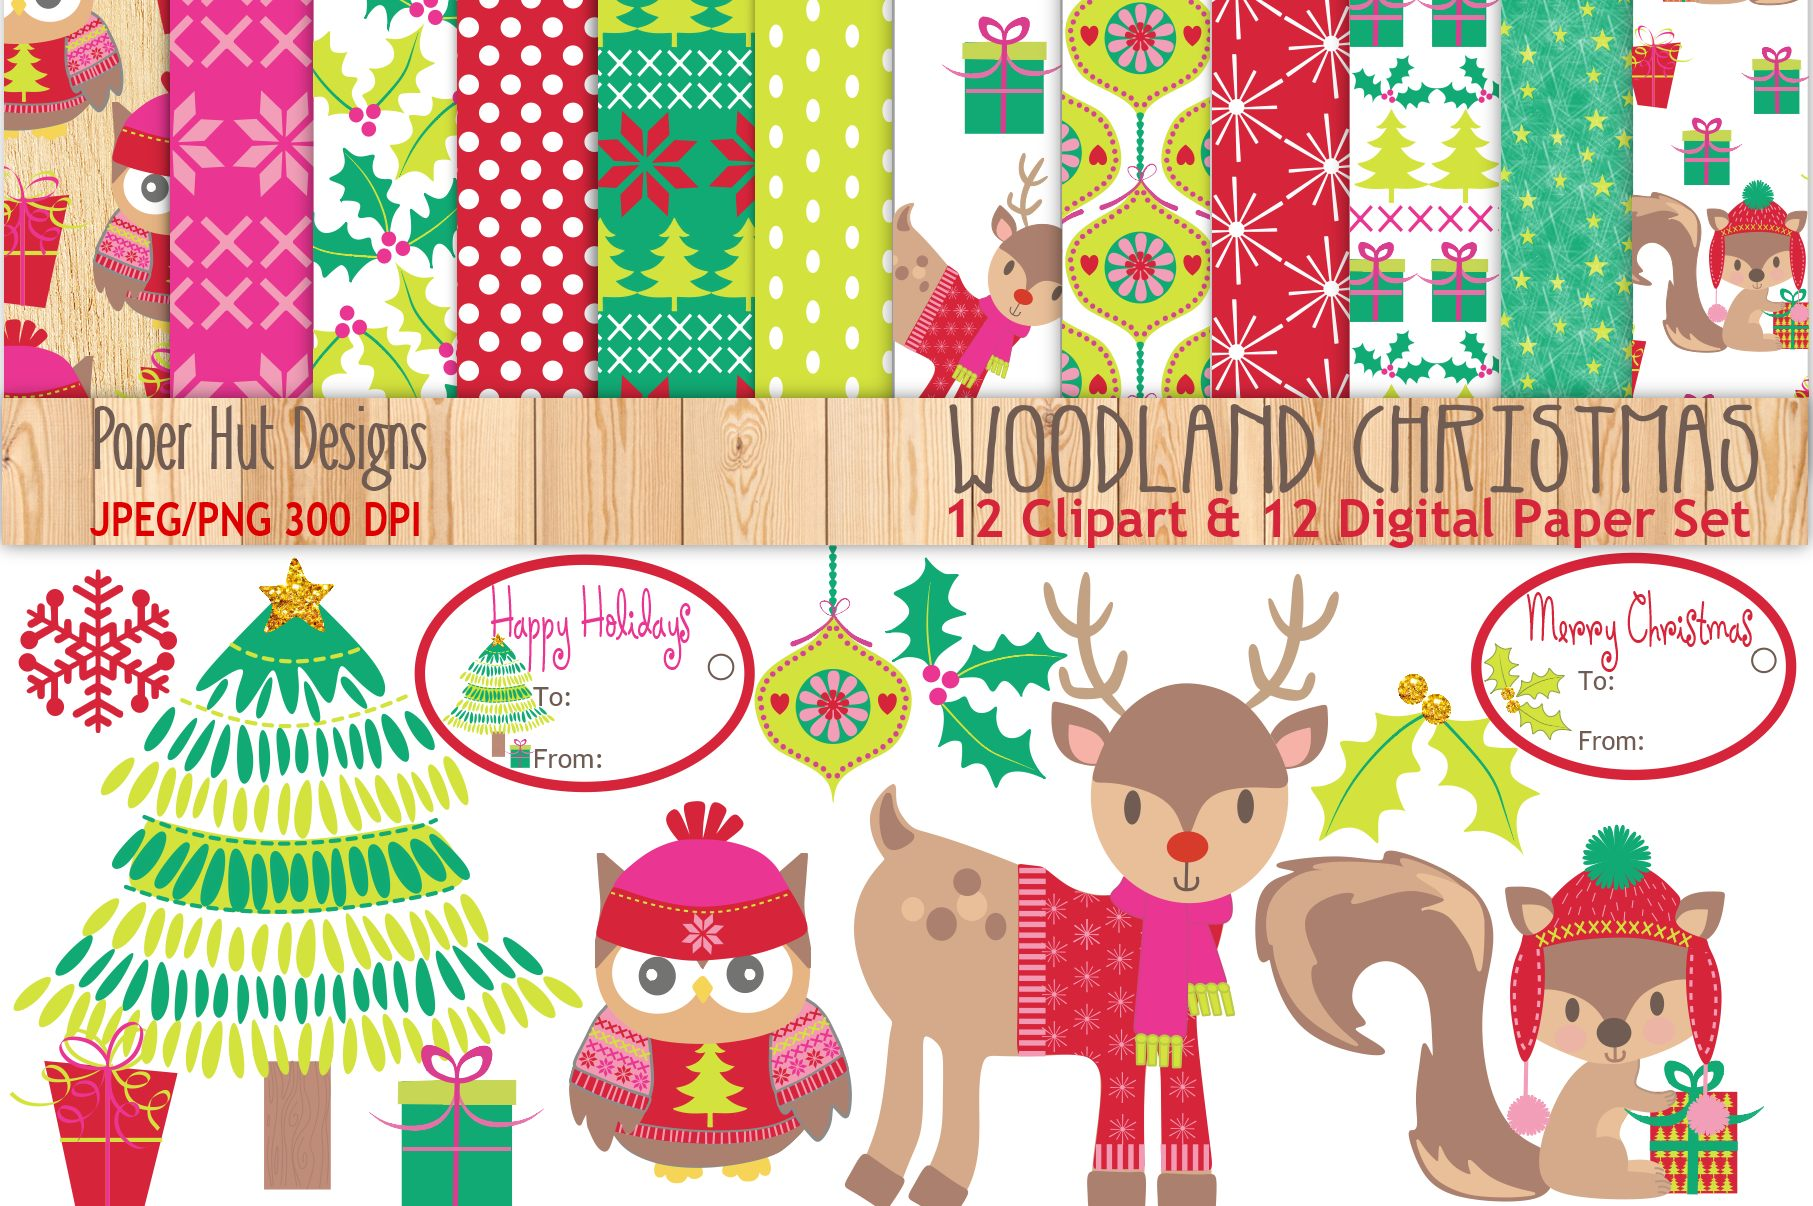 woodland christmas clipart and digital papers set example image 1 - Woodland Christmas